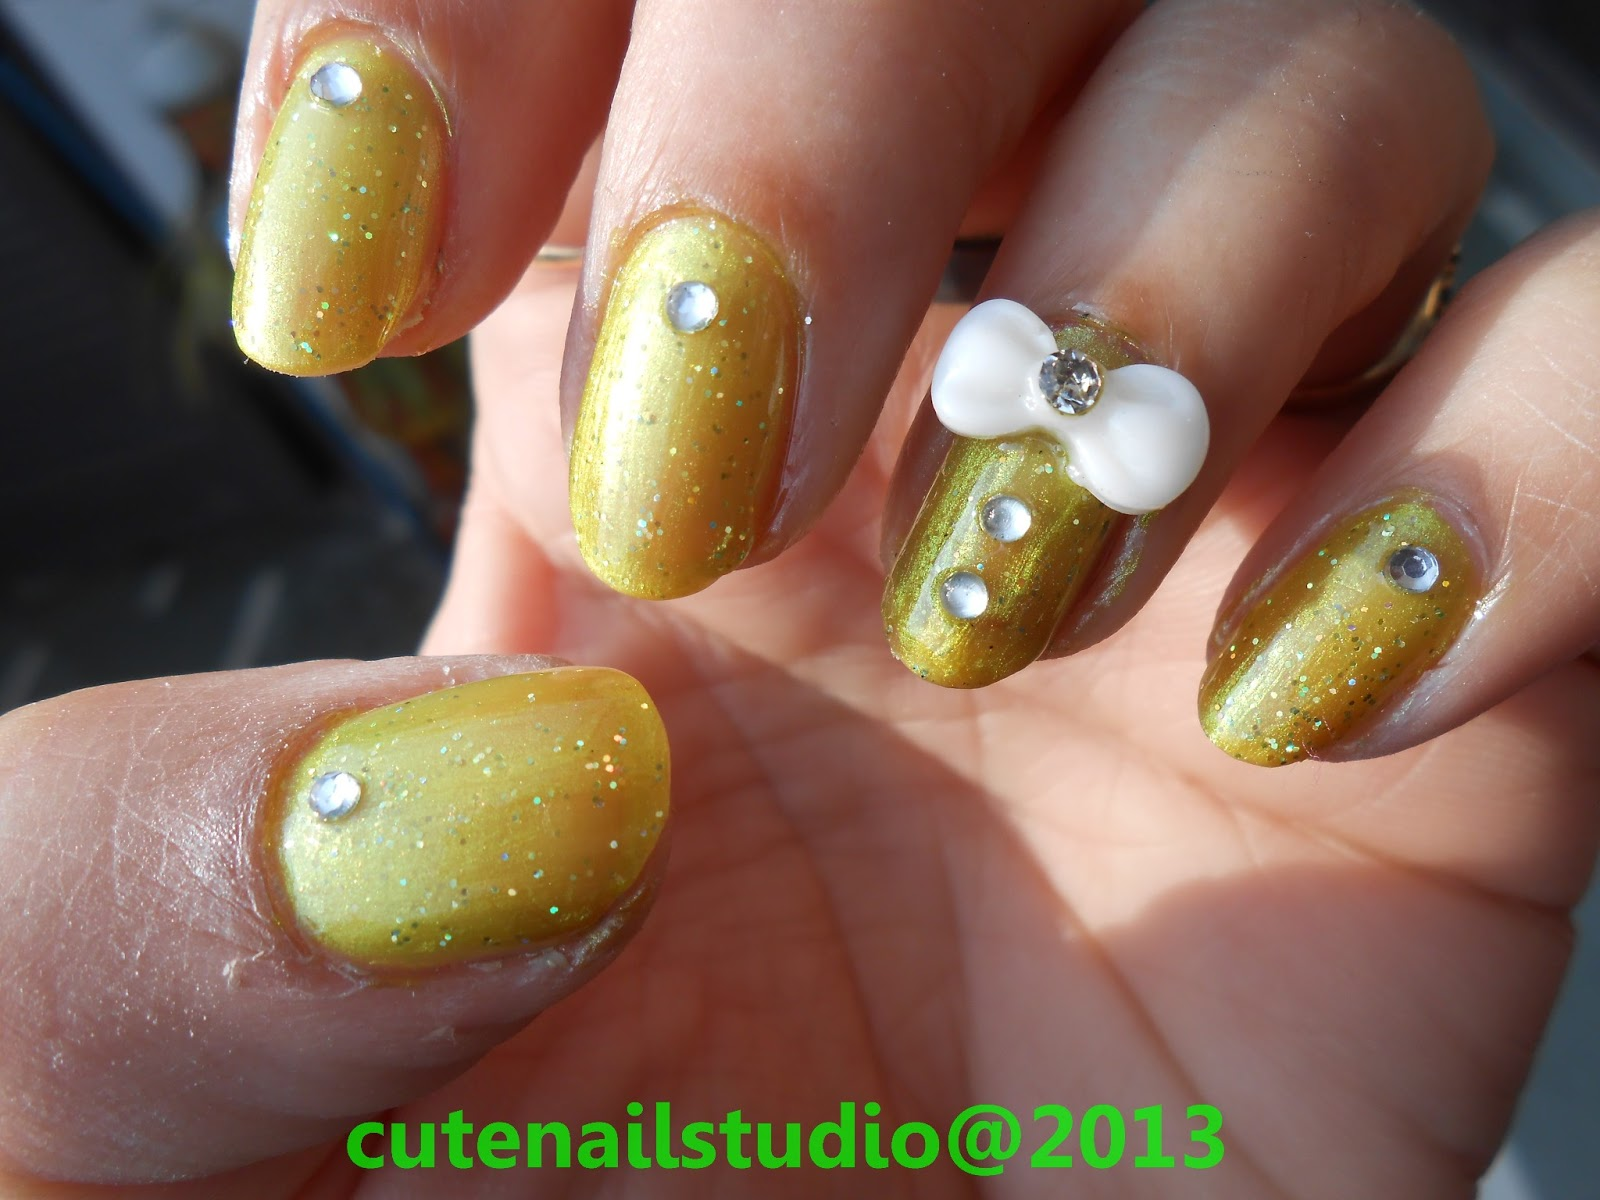 Cute nails: 3D bow nail art.